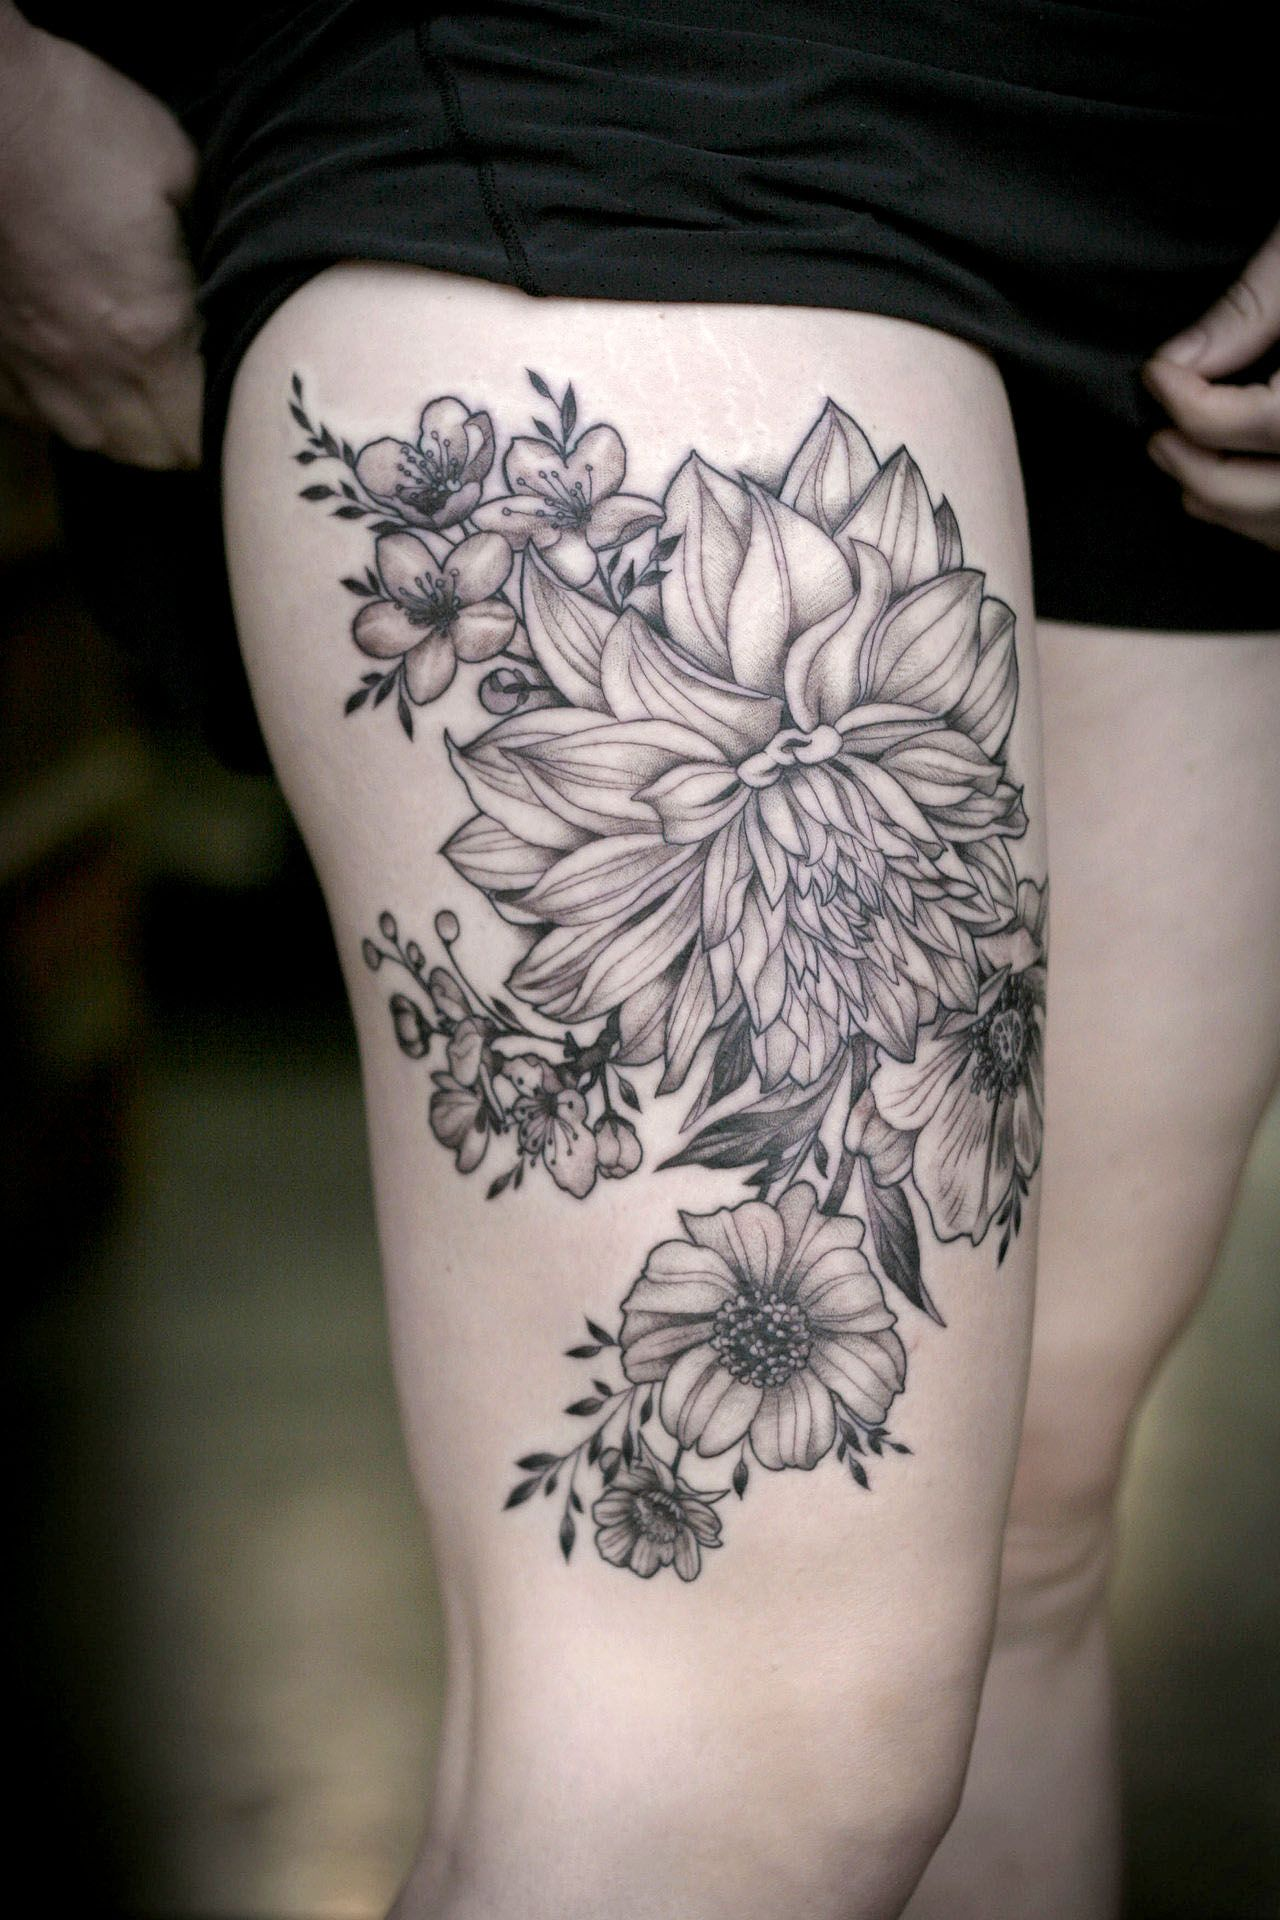 dahlias and garden flowers by alice kendall at wonderland tattoo